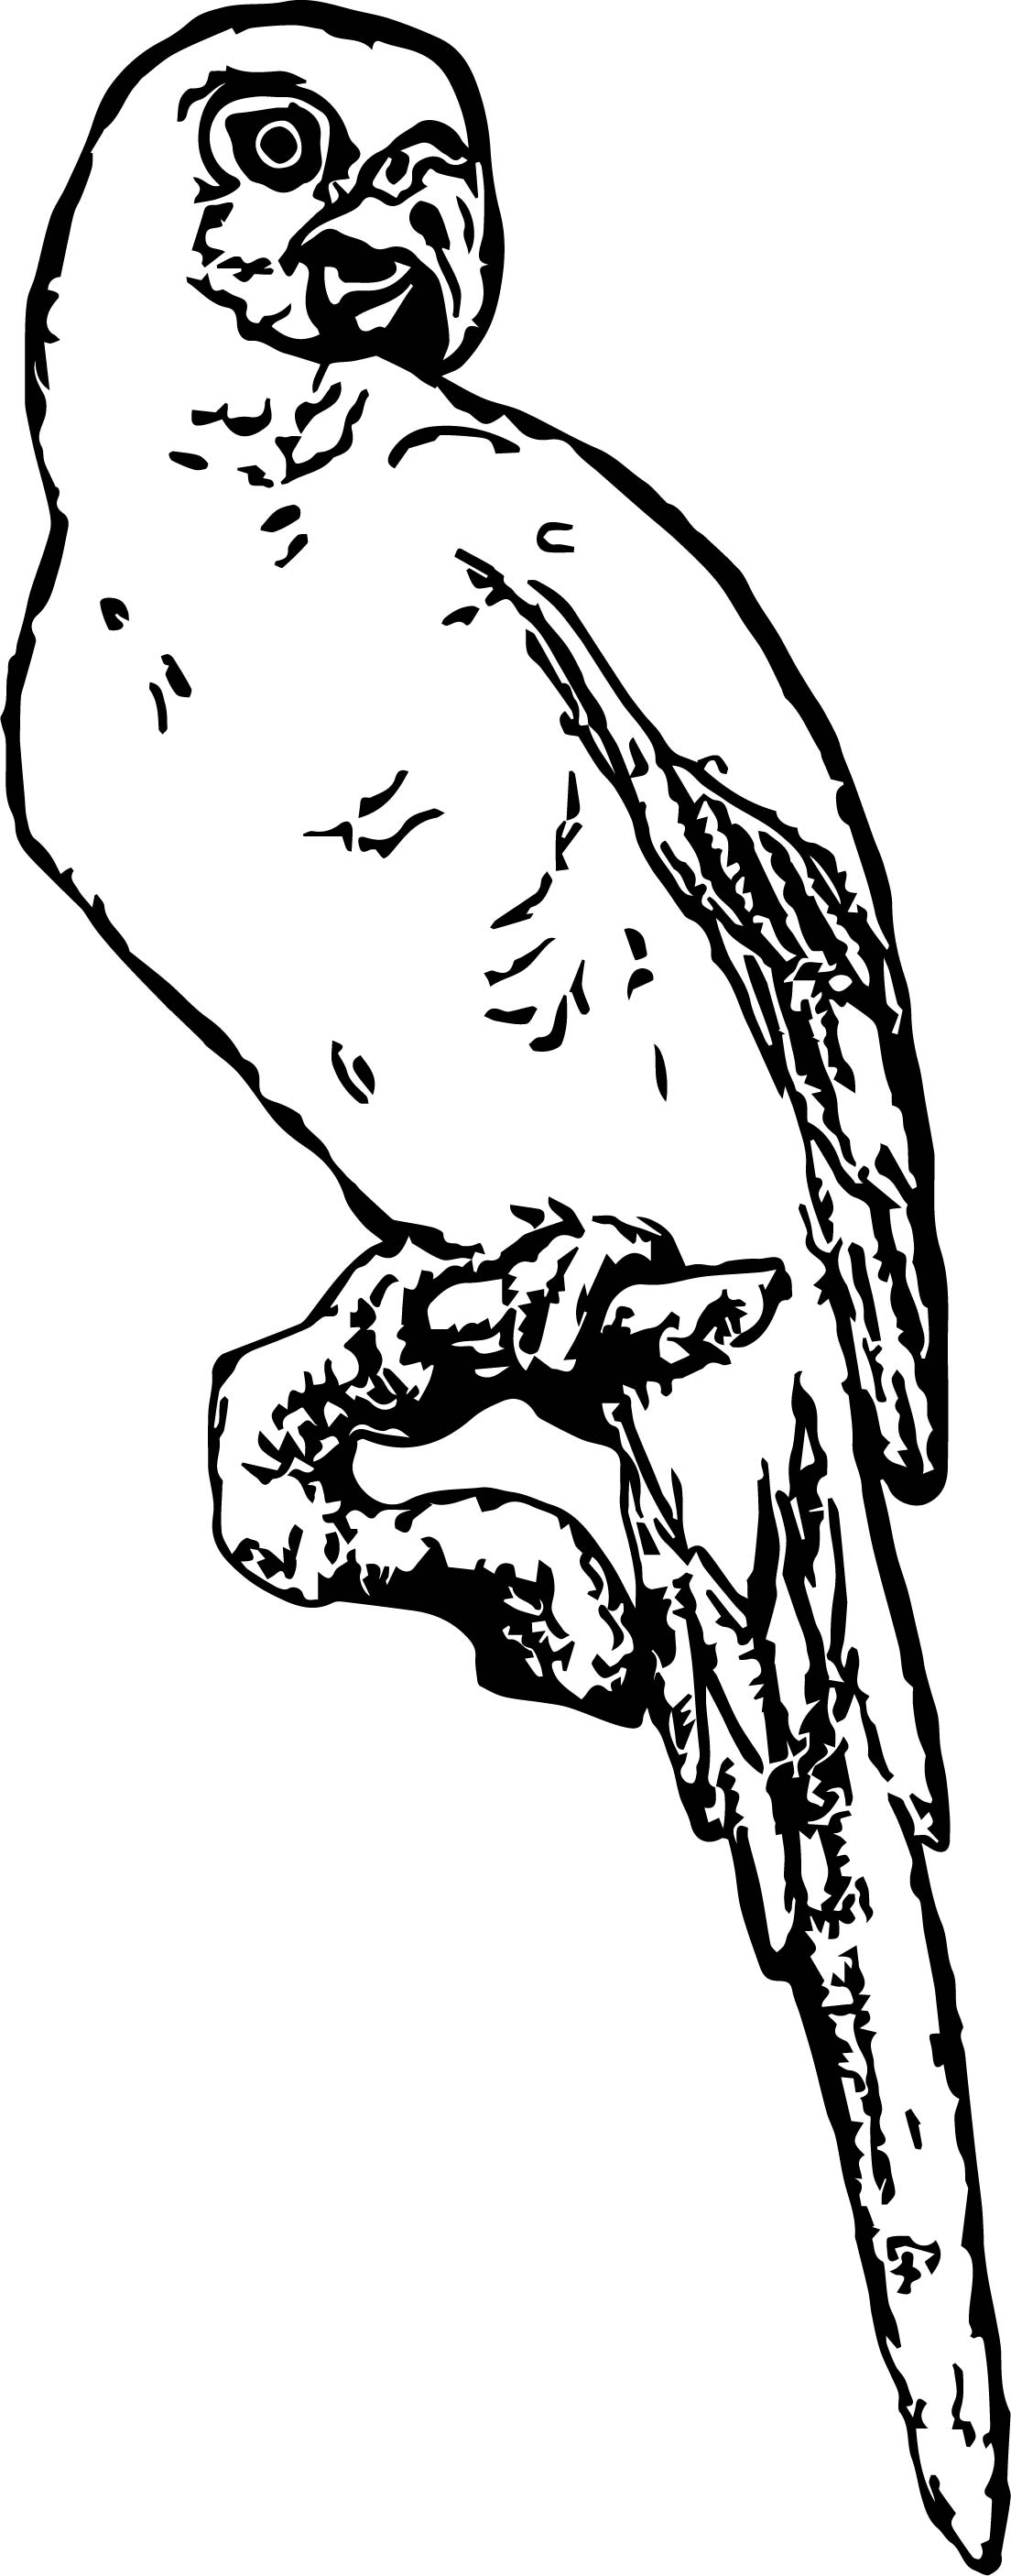 Parrot Coloring Page 123